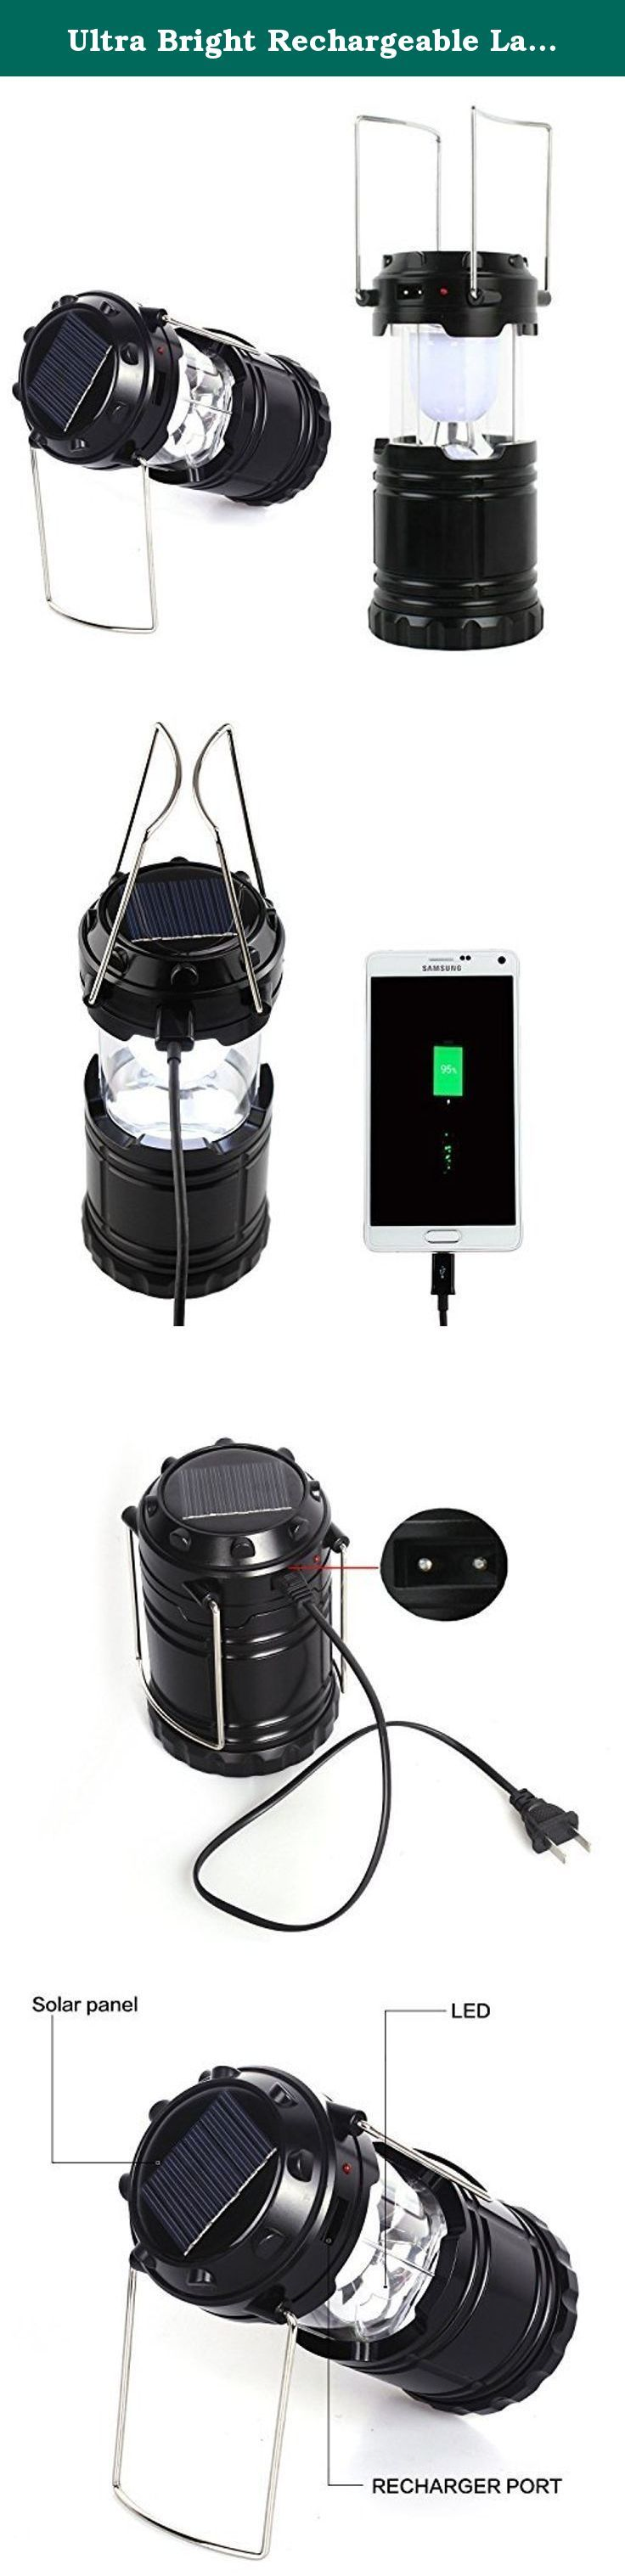 Ultra Bright Rechargeable Lantern , Solar Camping Lantern Powered Led,portable Camping LED Light,usb Charging,battery Power,ideal for Hiking, Camping,fishing,sports, Emergencies, Hurricanes, Outages. Description: Top solar design,solar charging,environmental protection,close to nature,innovative fashion Unique engaging design, portable,also can be hung anywhere, easy to use High-powered LED lamp beads Equipped with USB output charging a USB device, suitable for camping, reading, fishing…